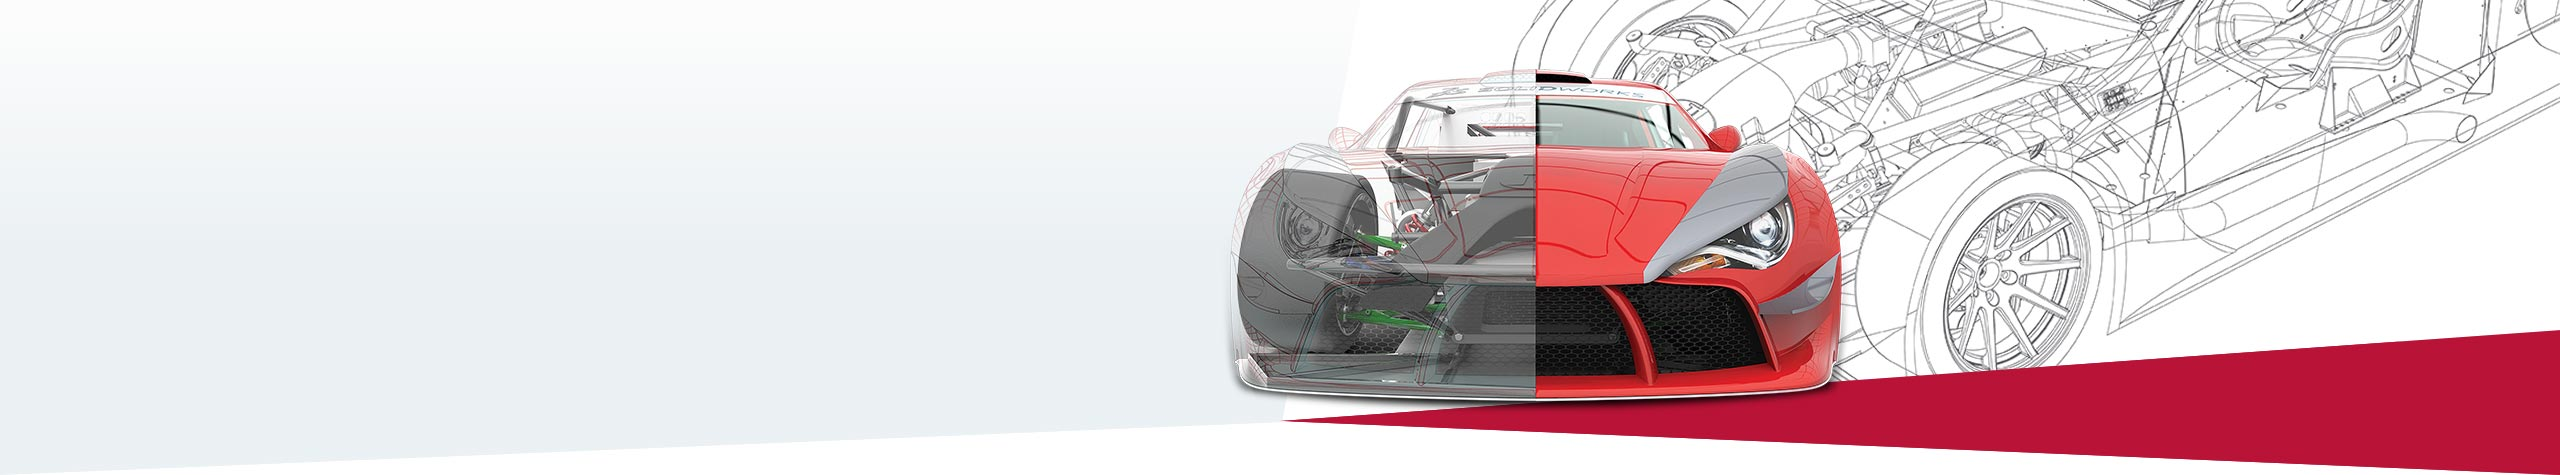 SOLIDWORKS Premium Die ultimative 3D-CAD-Lösung.